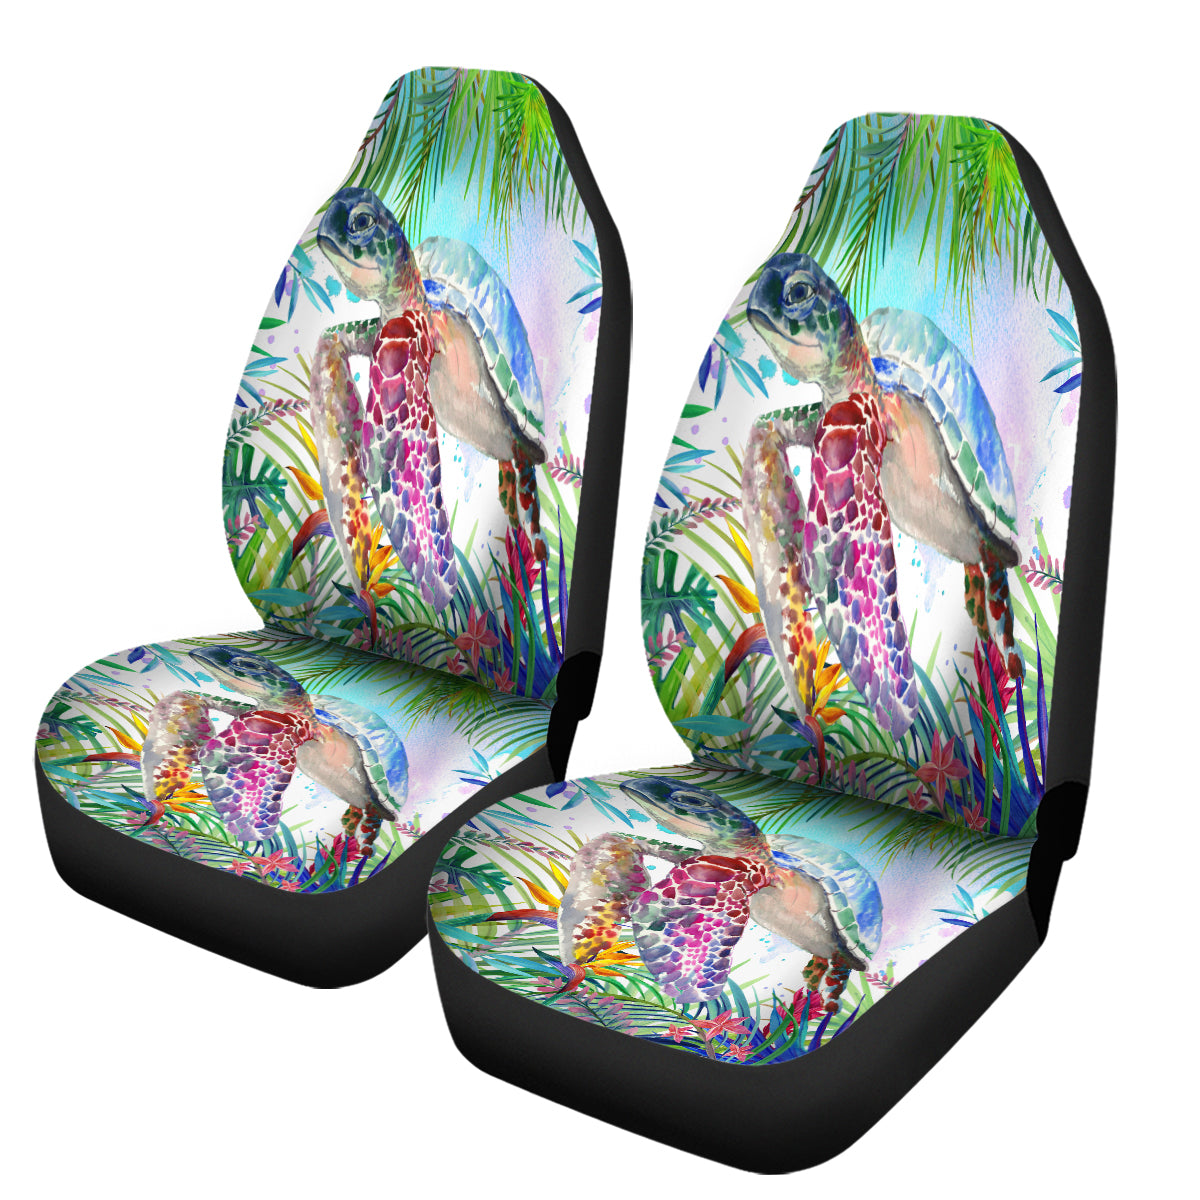 The Tropical Sea Turtle Car Seat Cover-Coastal Passion